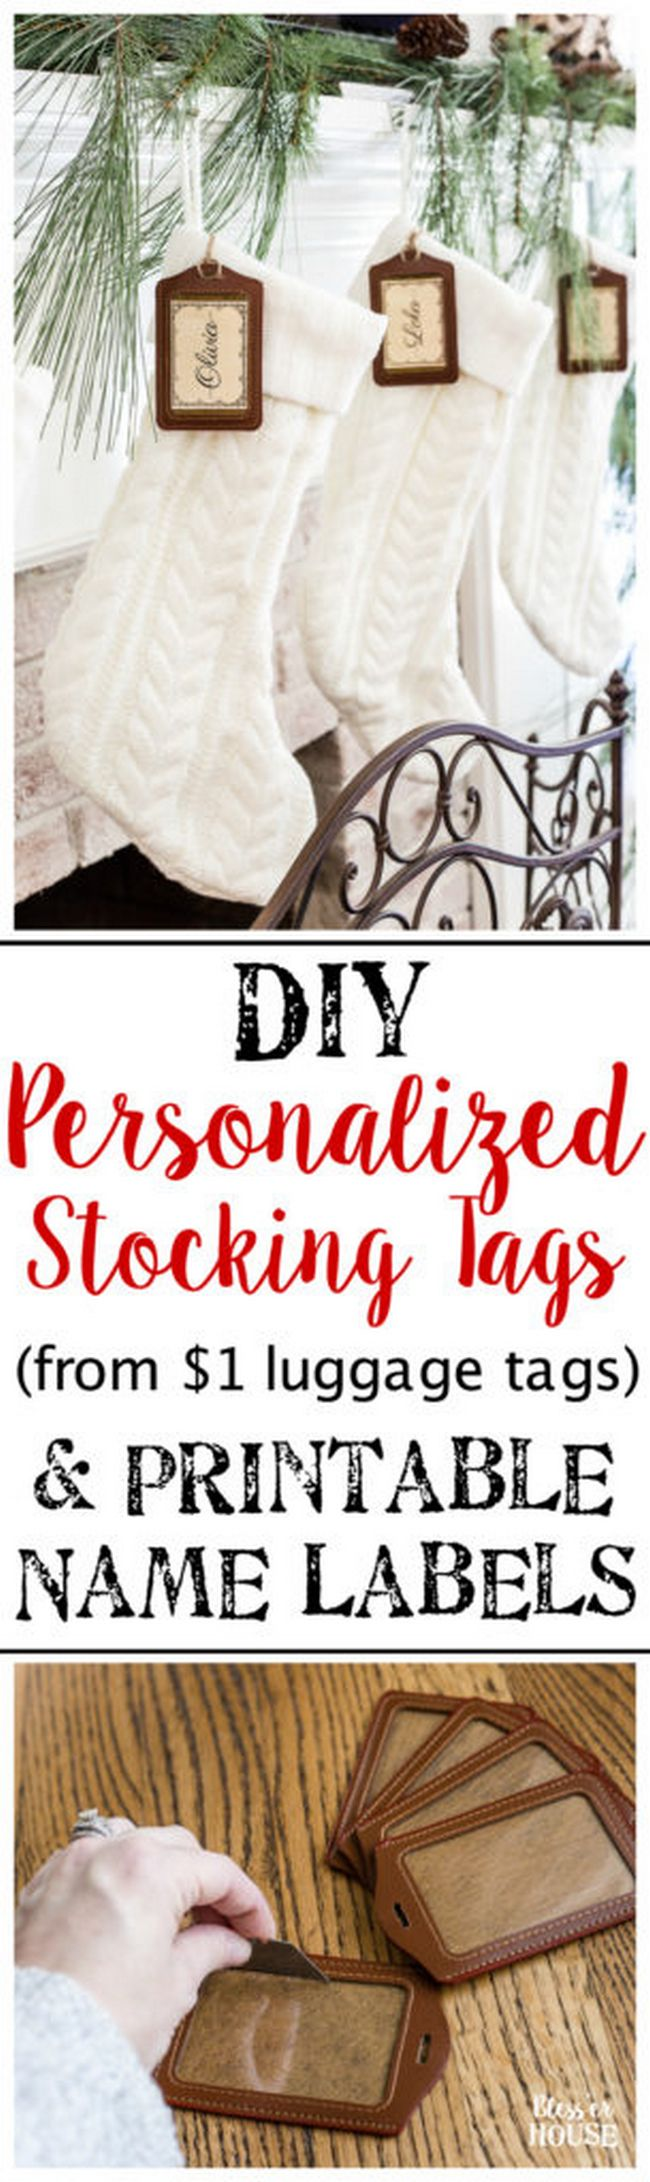 DIY Personalized Stocking Tags